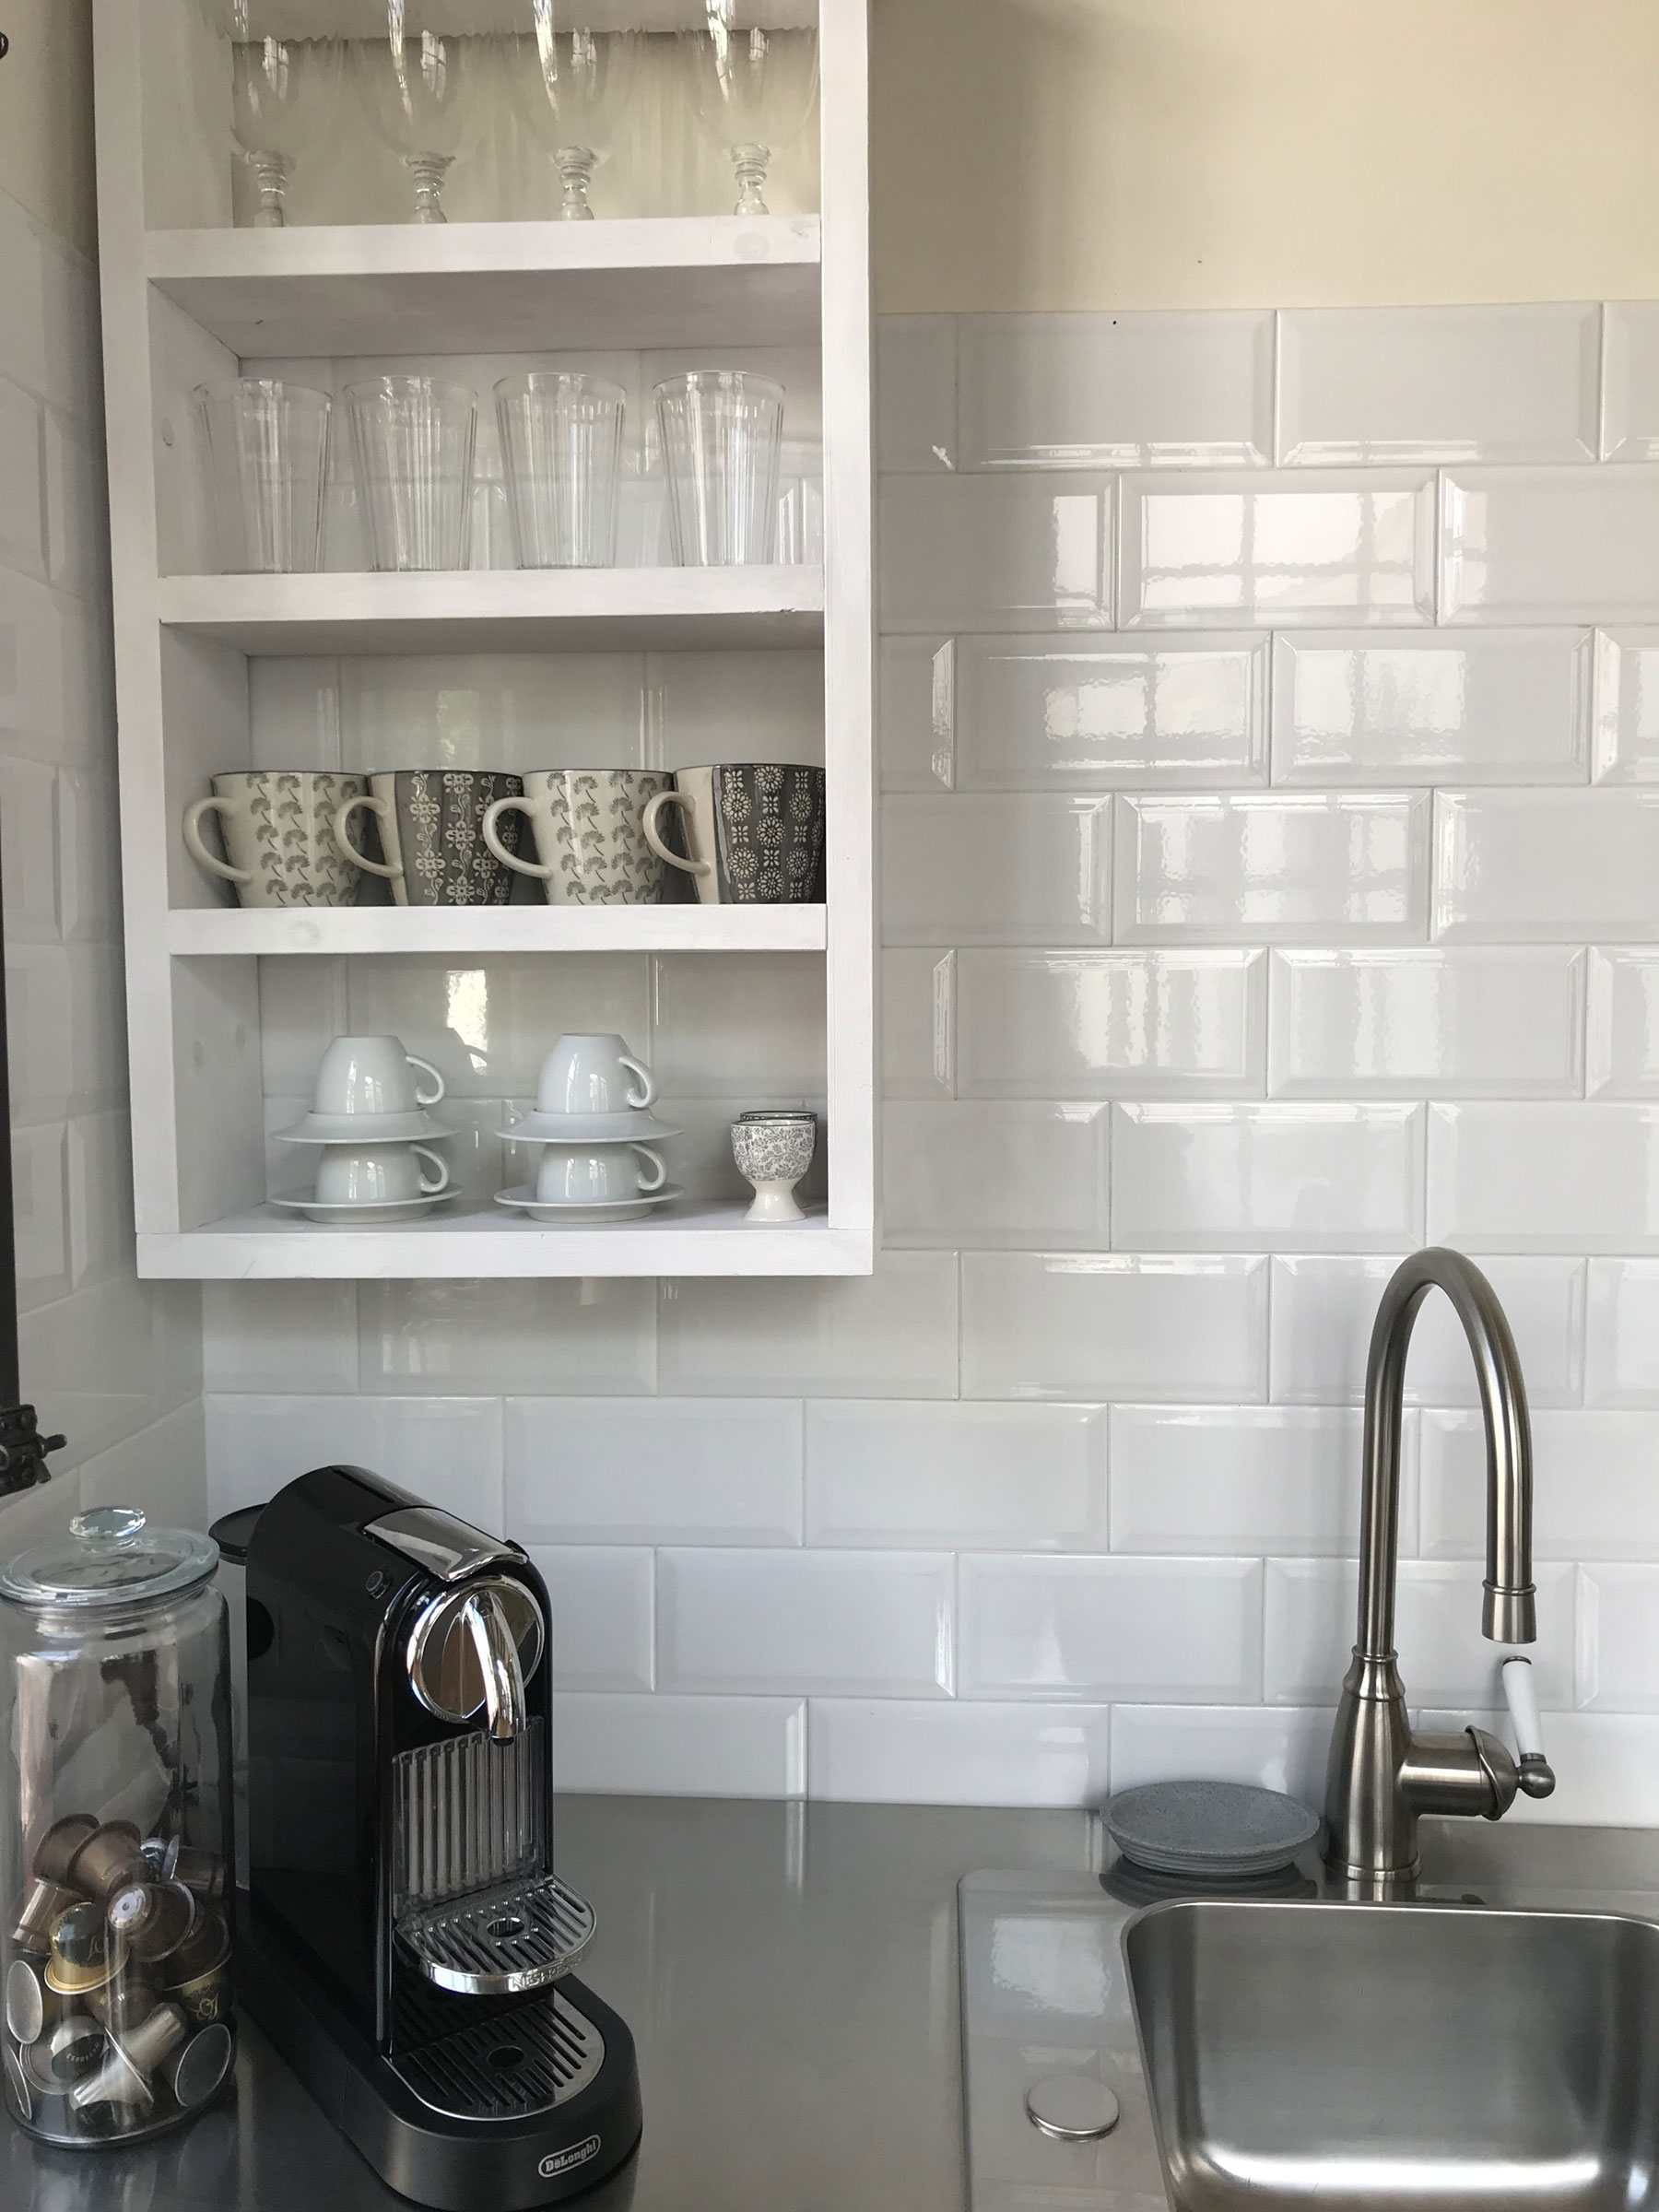 a beautiful kitchen sink with stainless steel counter and white subway tile on the walls